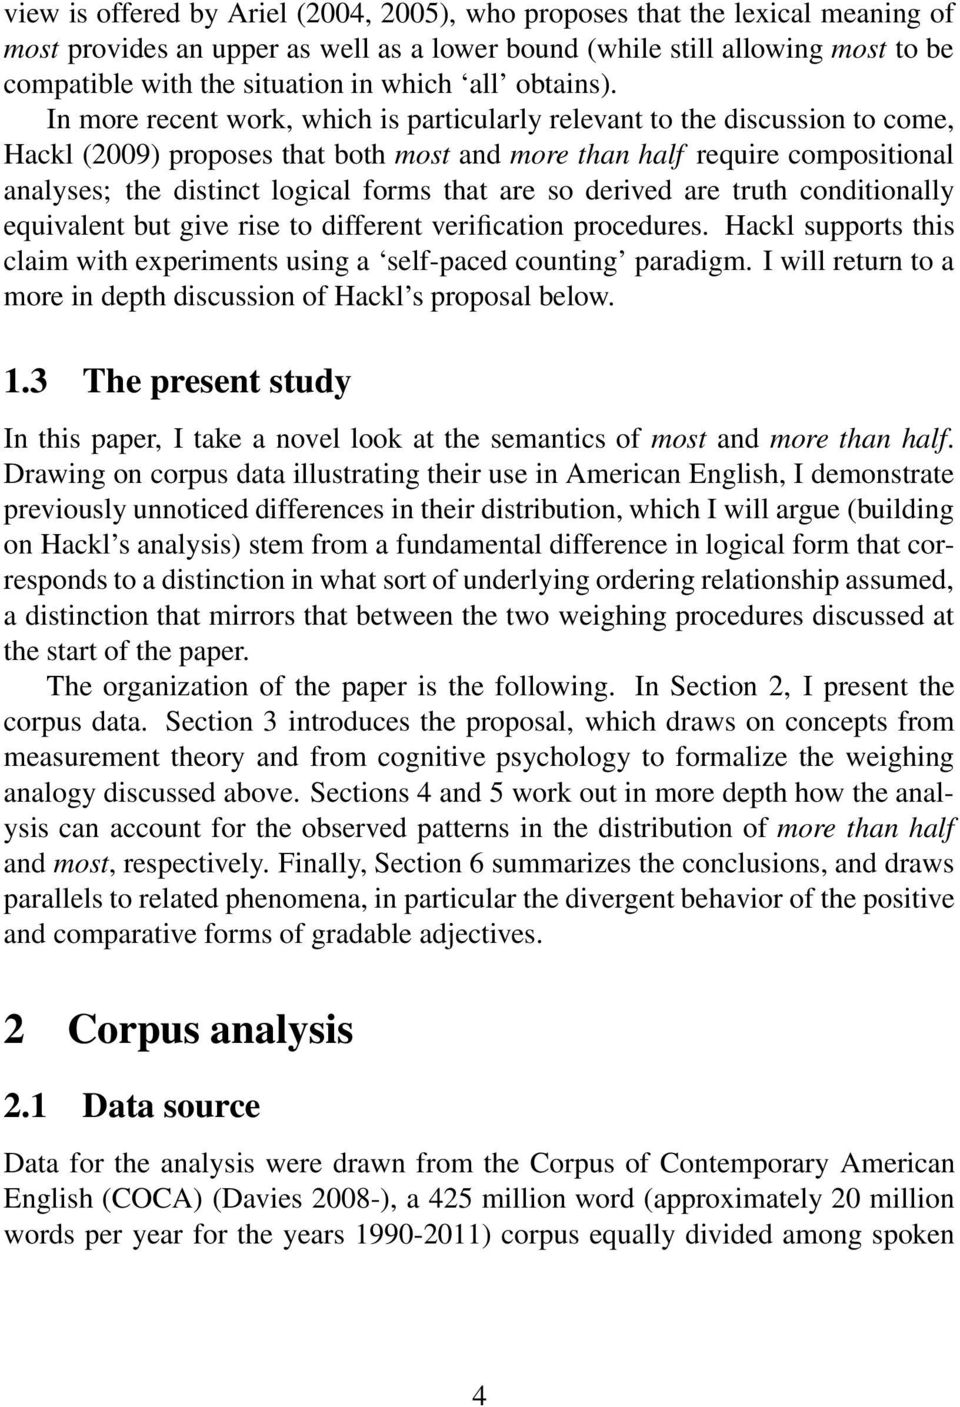 In more recent work, which is particularly relevant to the discussion to come, Hackl (2009) proposes that both most and more than half require compositional analyses; the distinct logical forms that